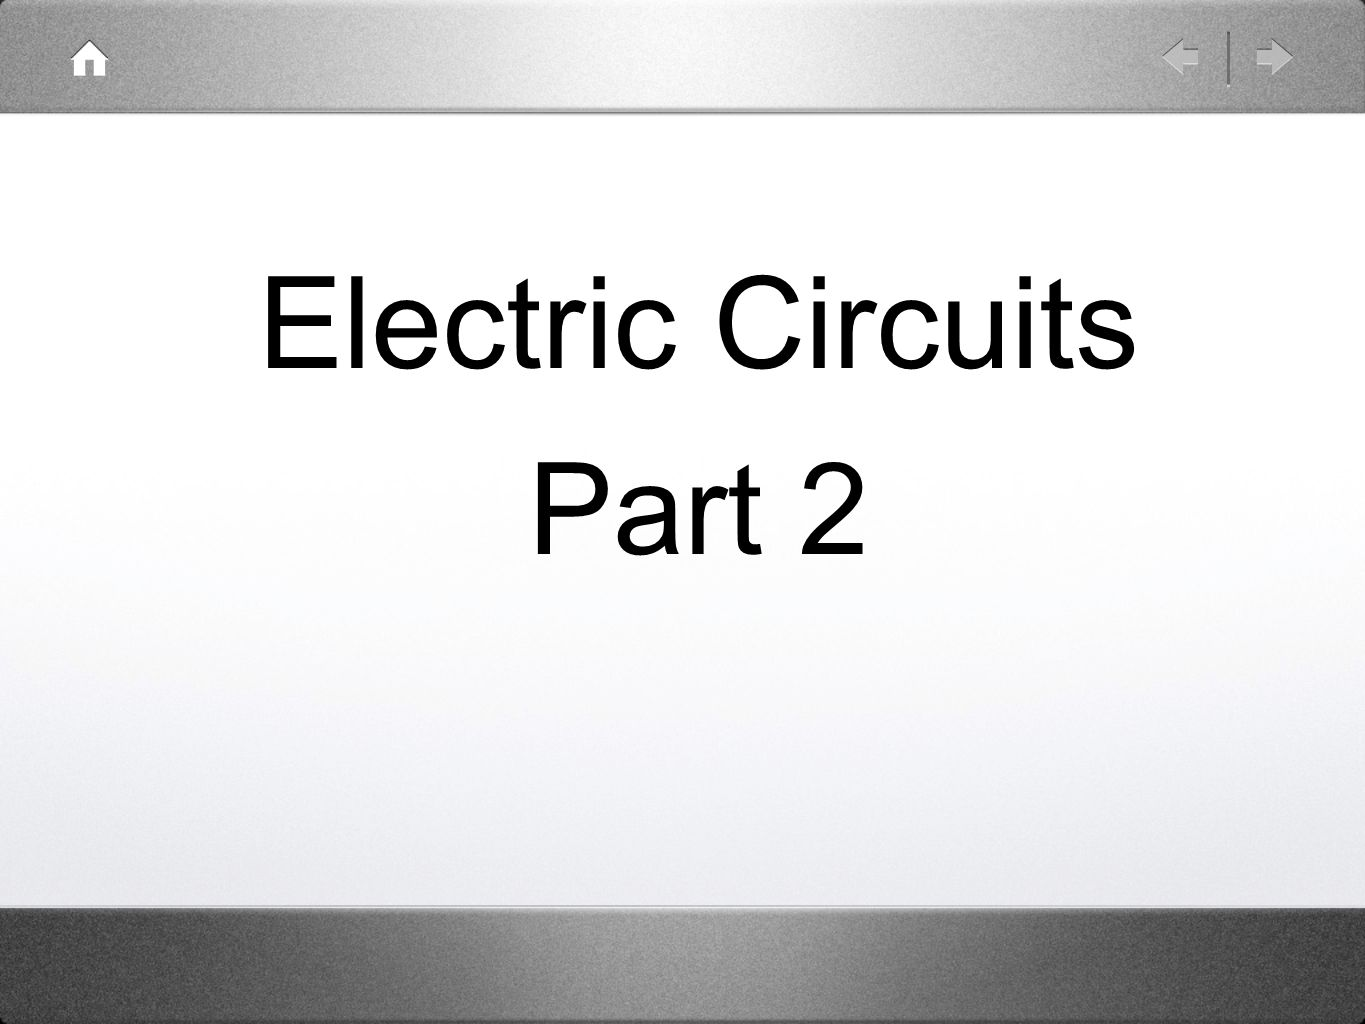 Electric Circuits Part 2